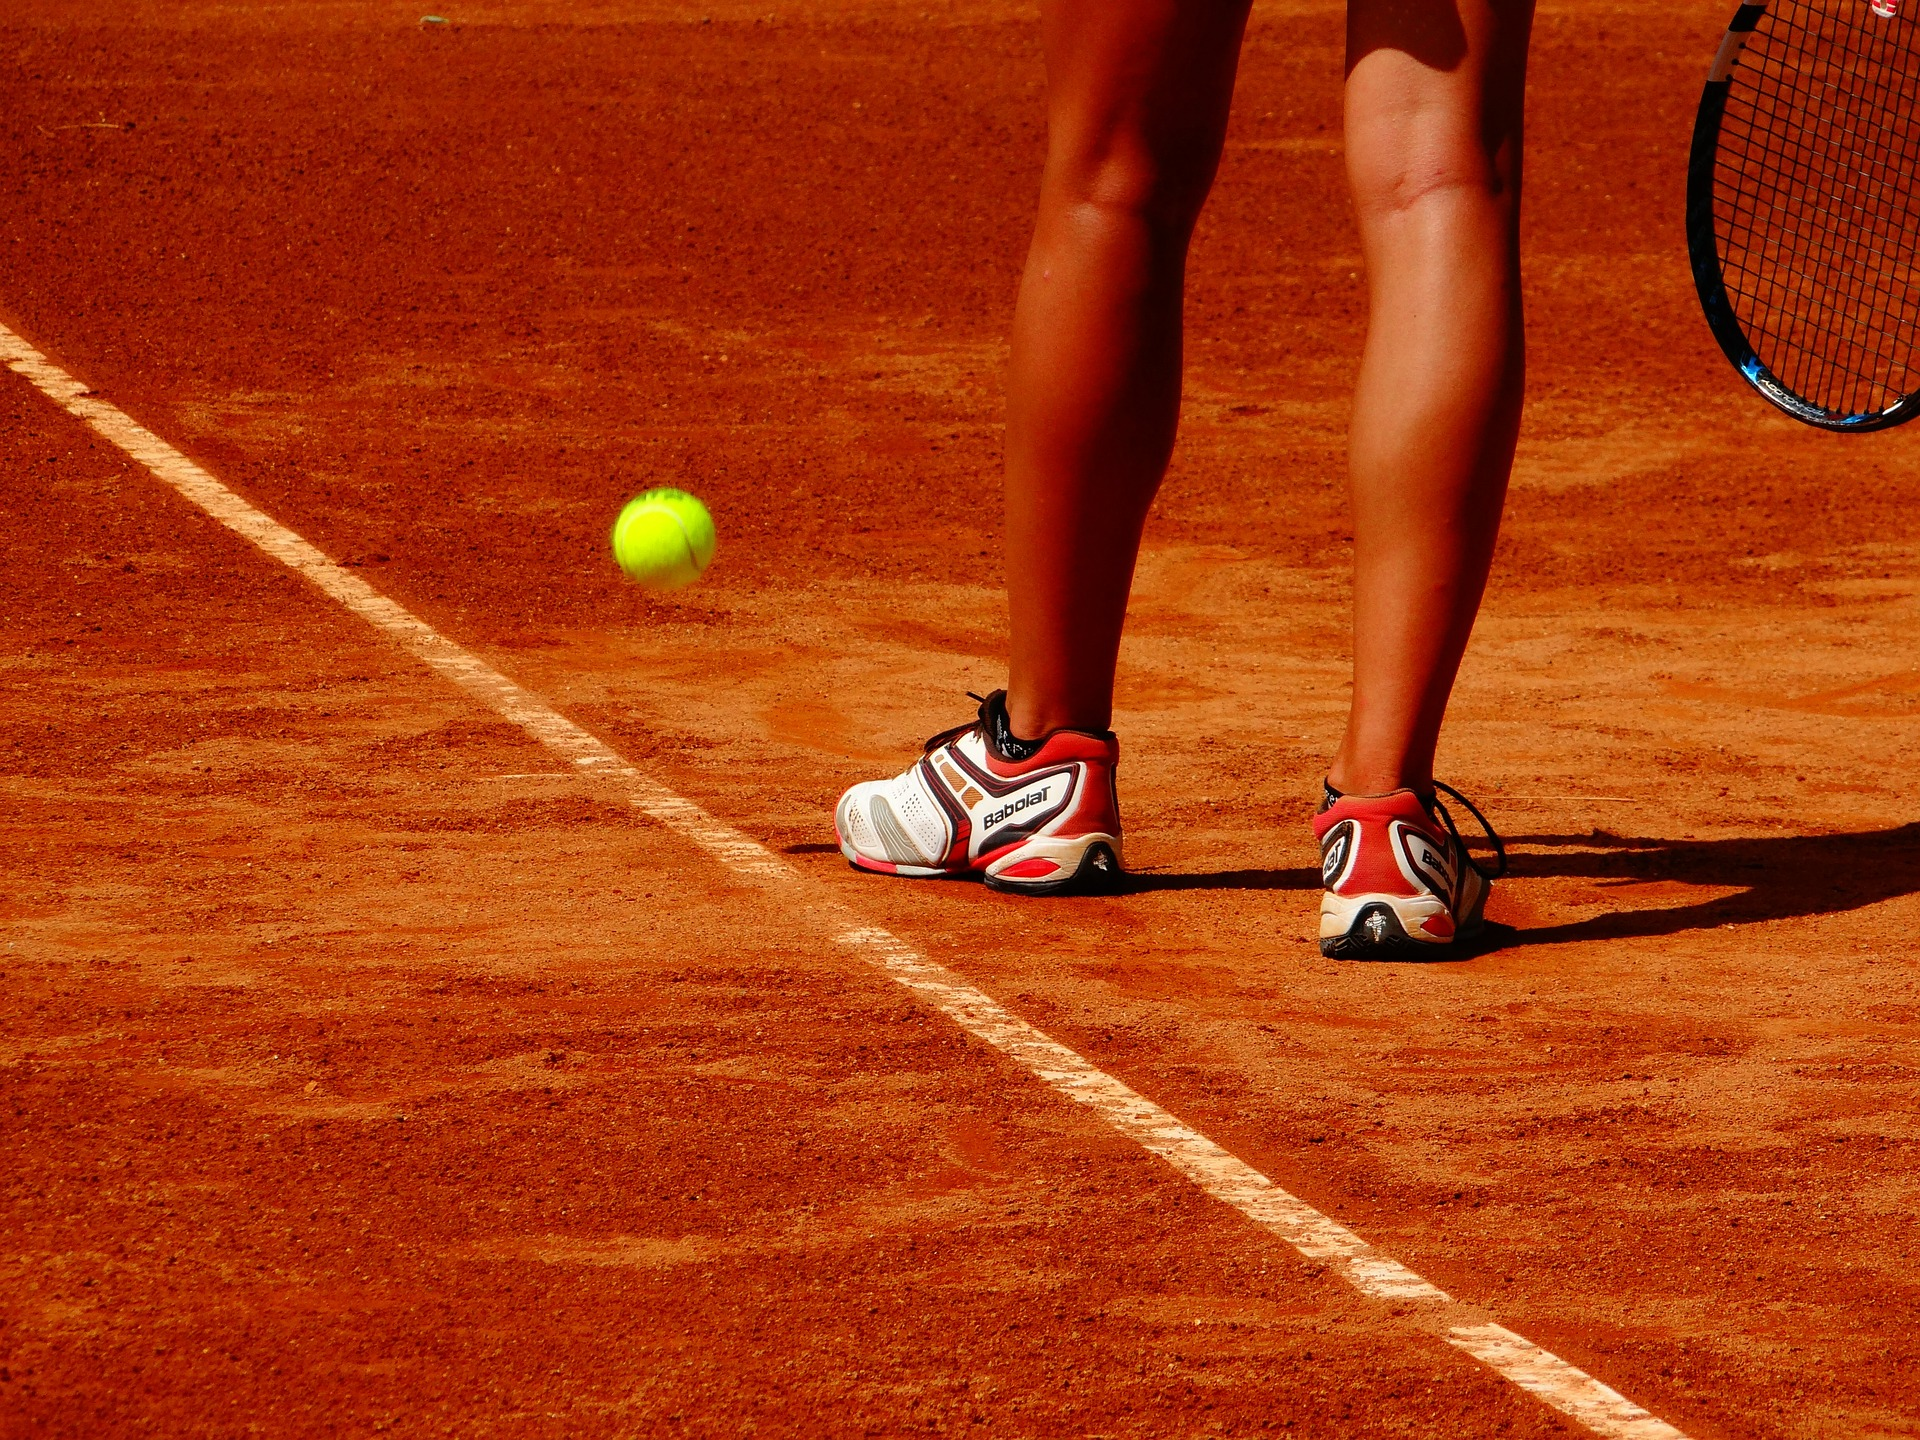 tennis 614183 1920 - Tennis Podiatry